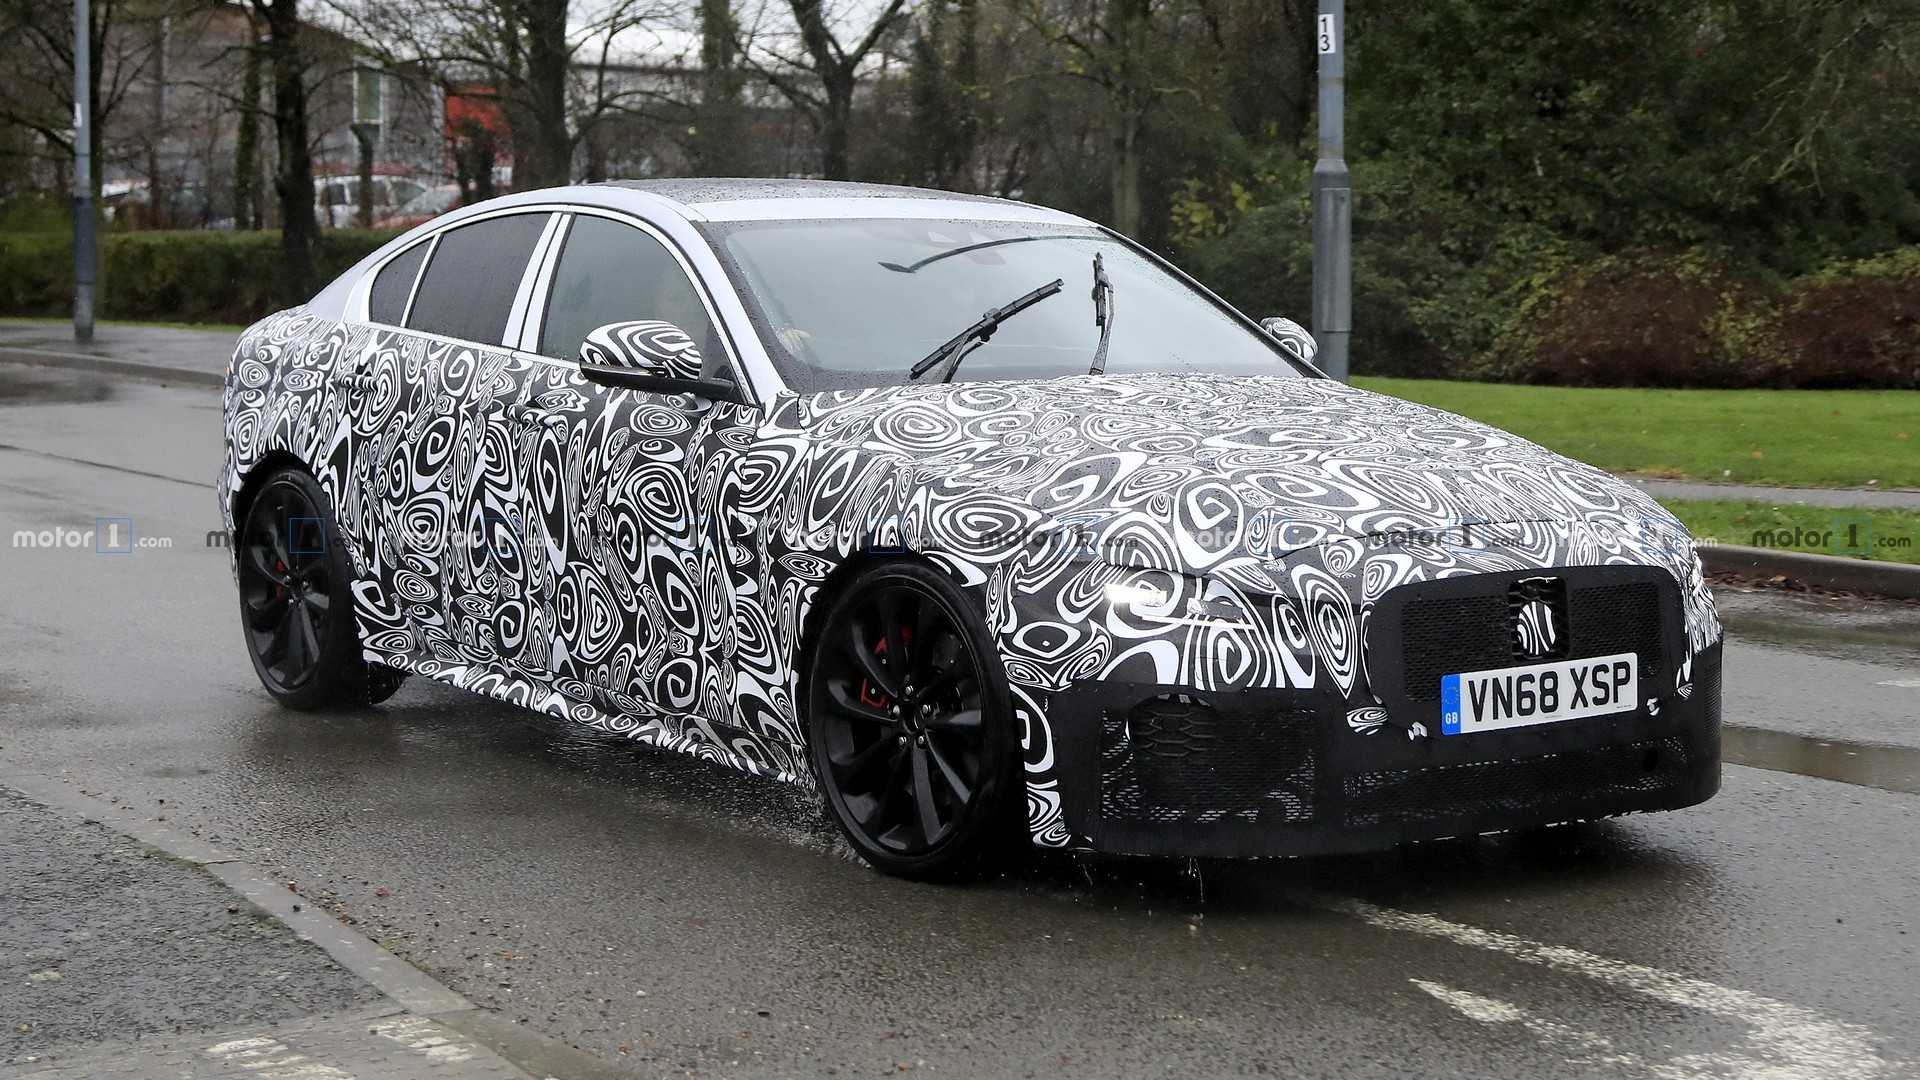 45 Great 2020 Jaguar Xe Sedan Exterior and Interior for 2020 Jaguar Xe Sedan